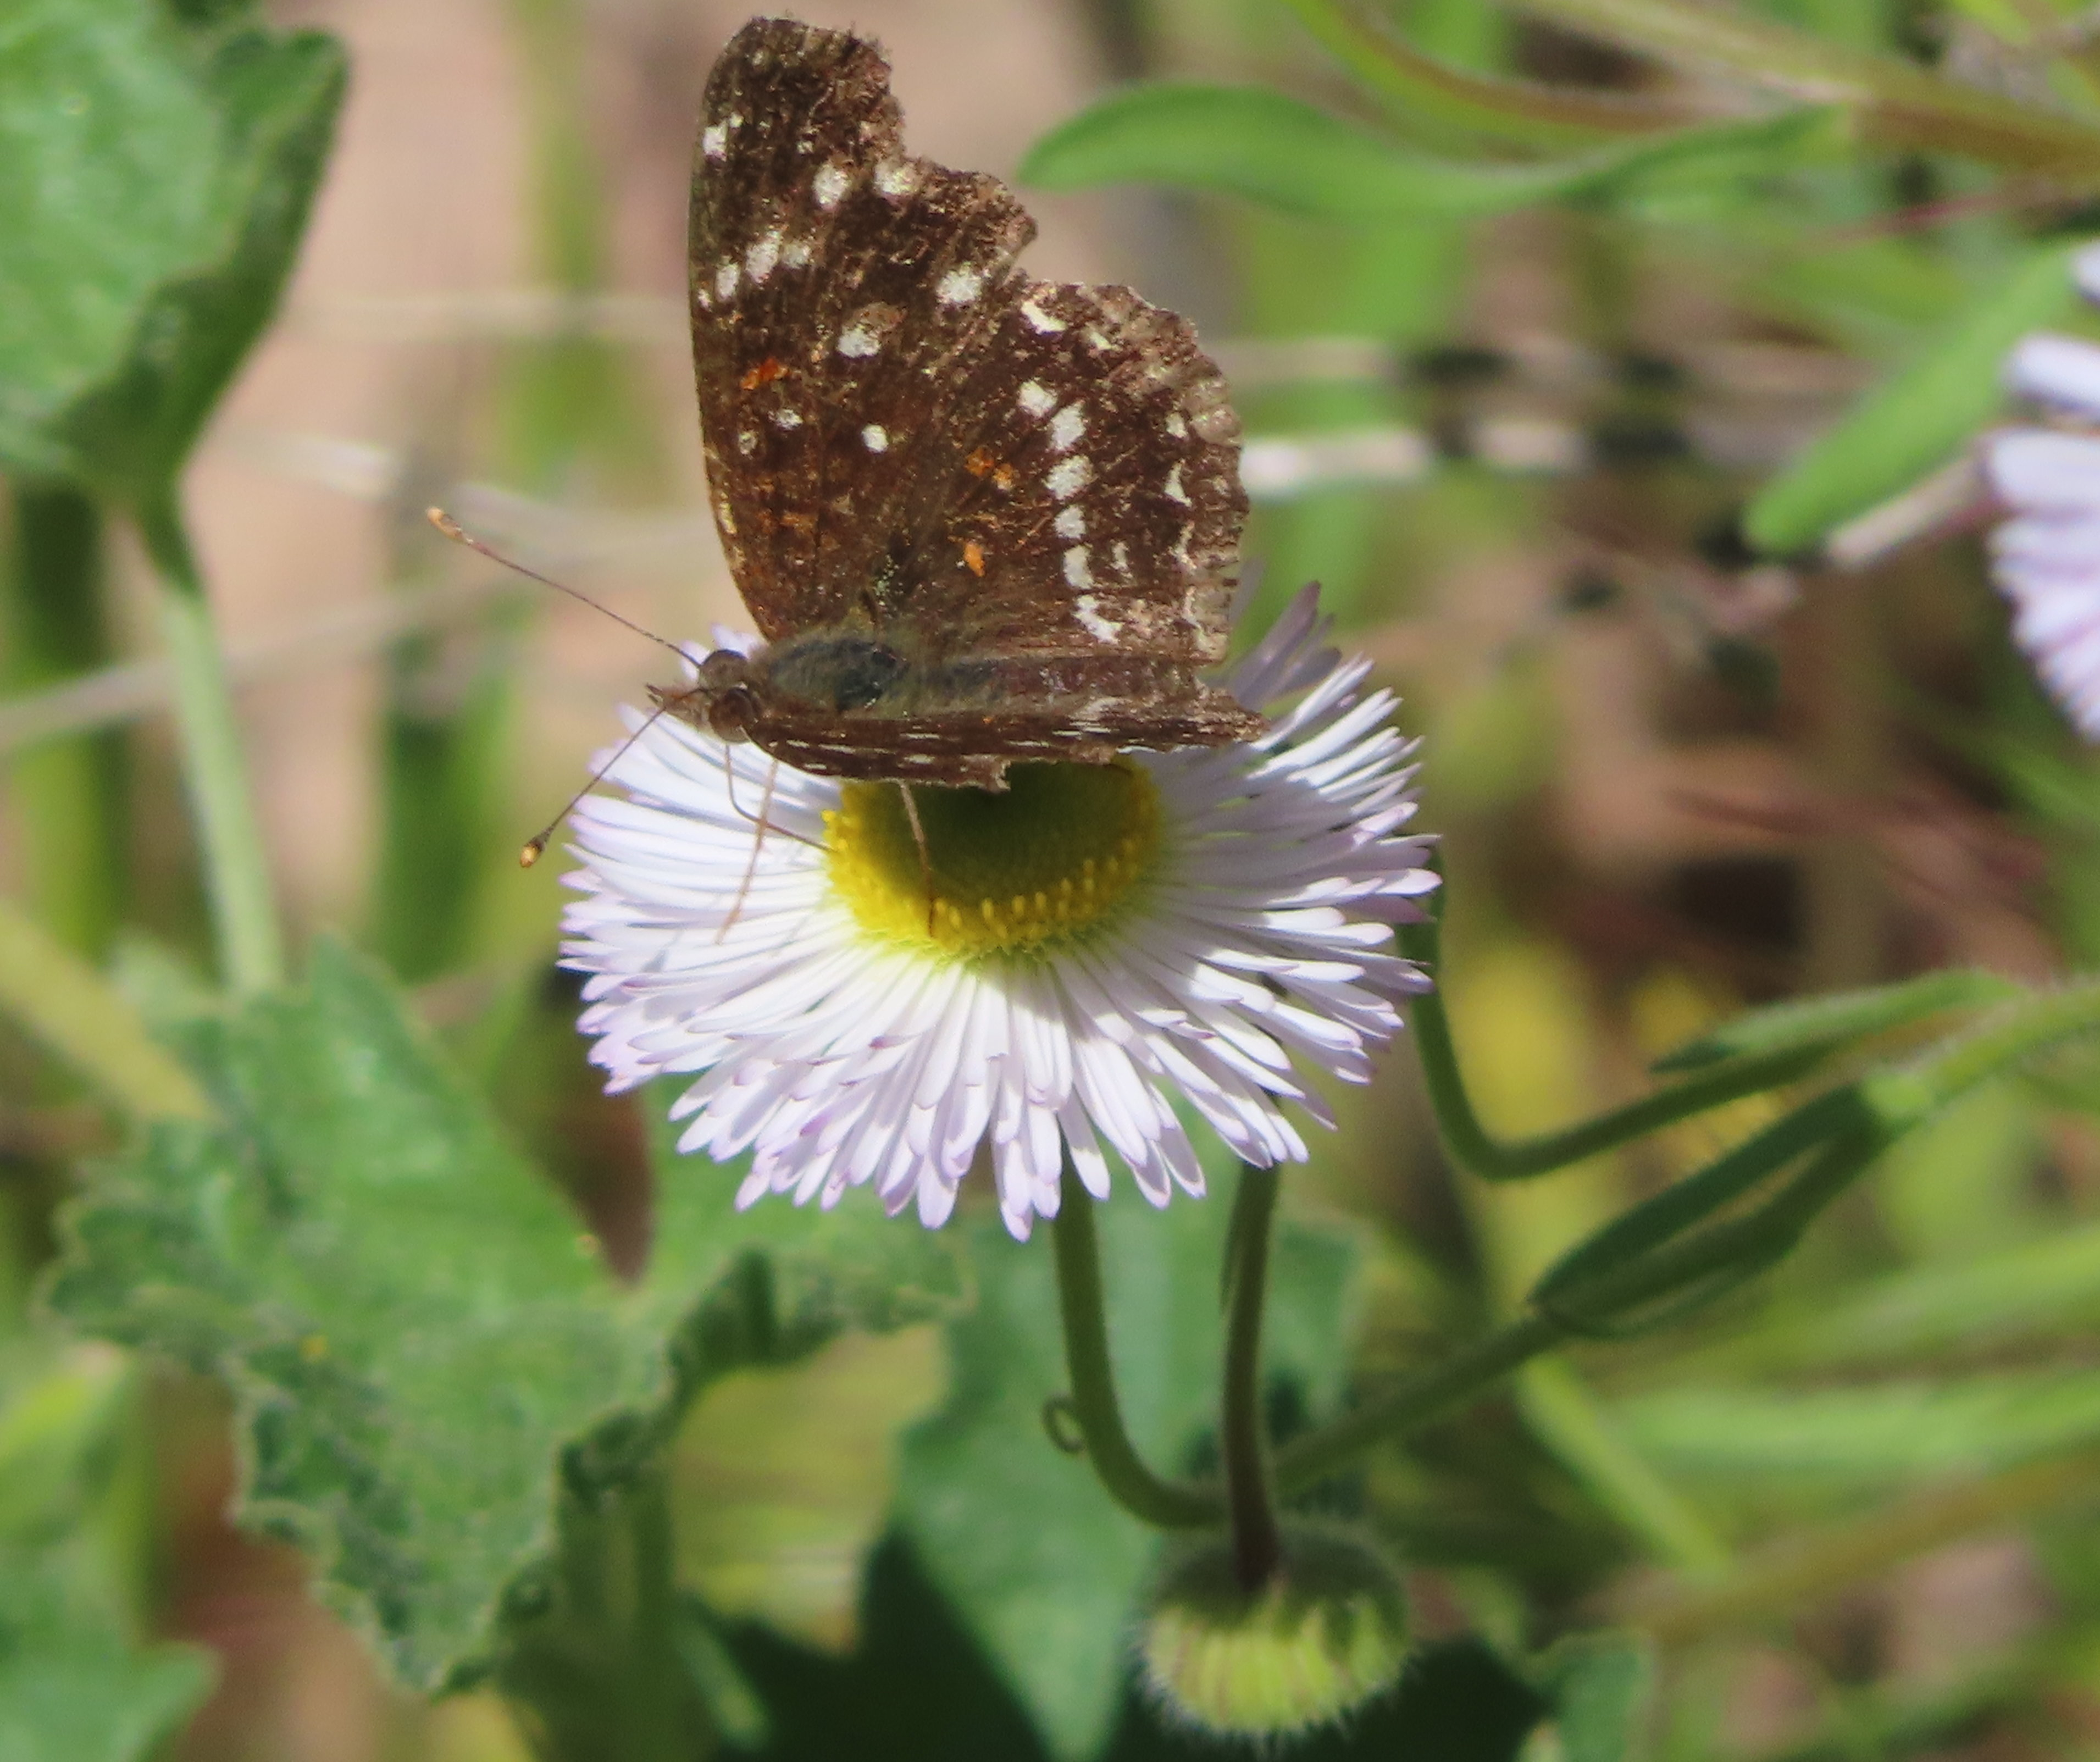 Texas crescent butterfly nectaring on fleabane